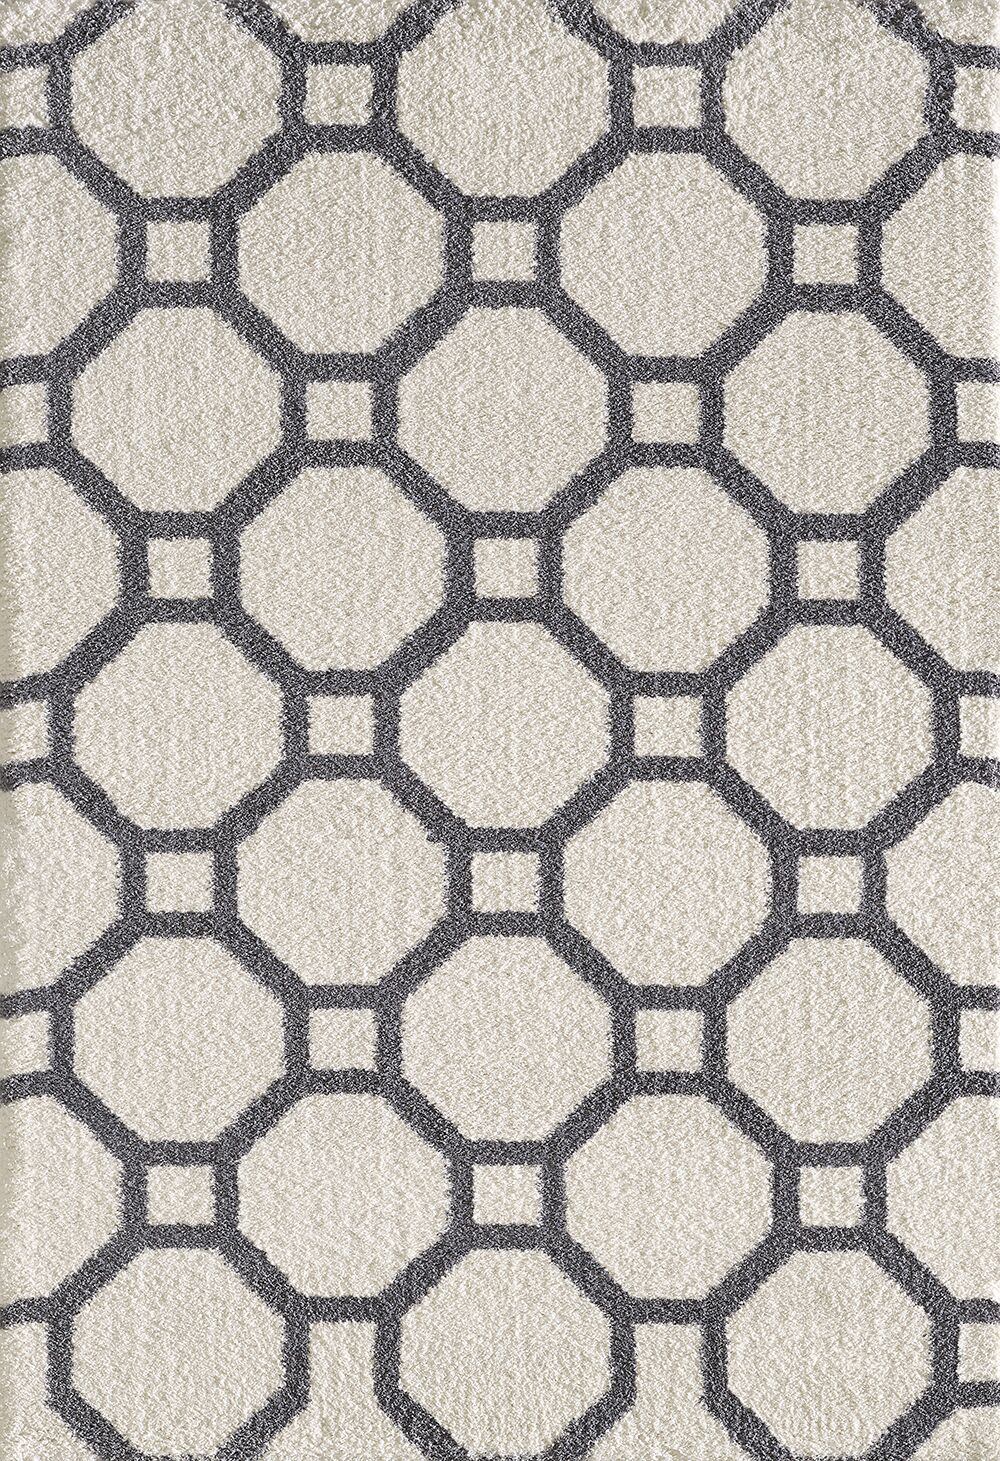 Lowes White/Gray Area Rug Rug Size: Rectangle 3'11